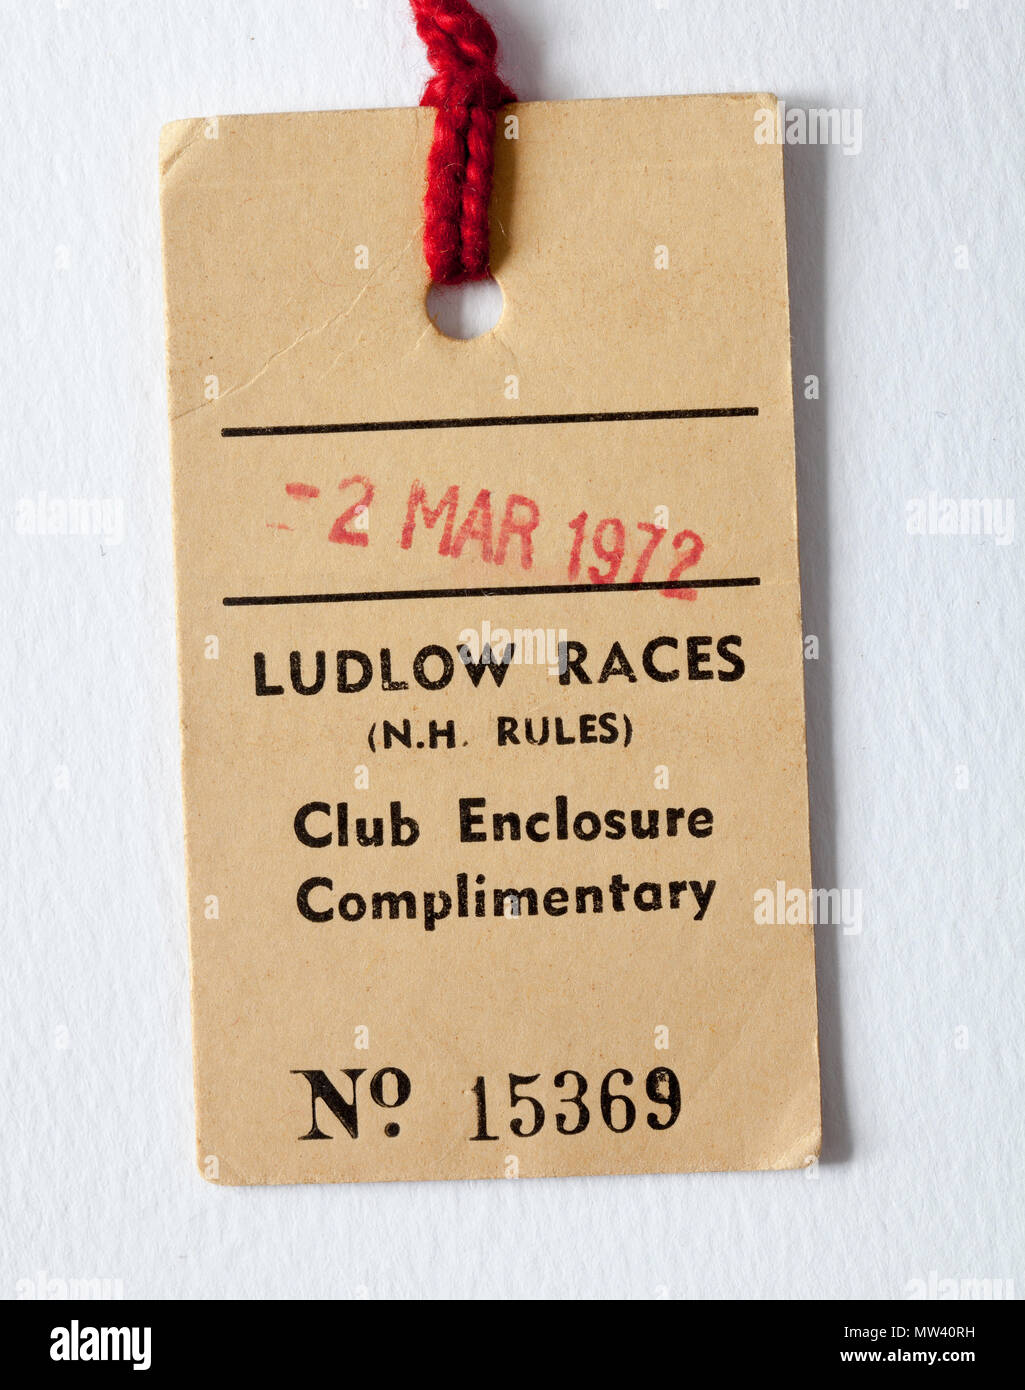 Old Vintage Race Course Entry Badge Tag - Ludlow Races Stock Photo ...